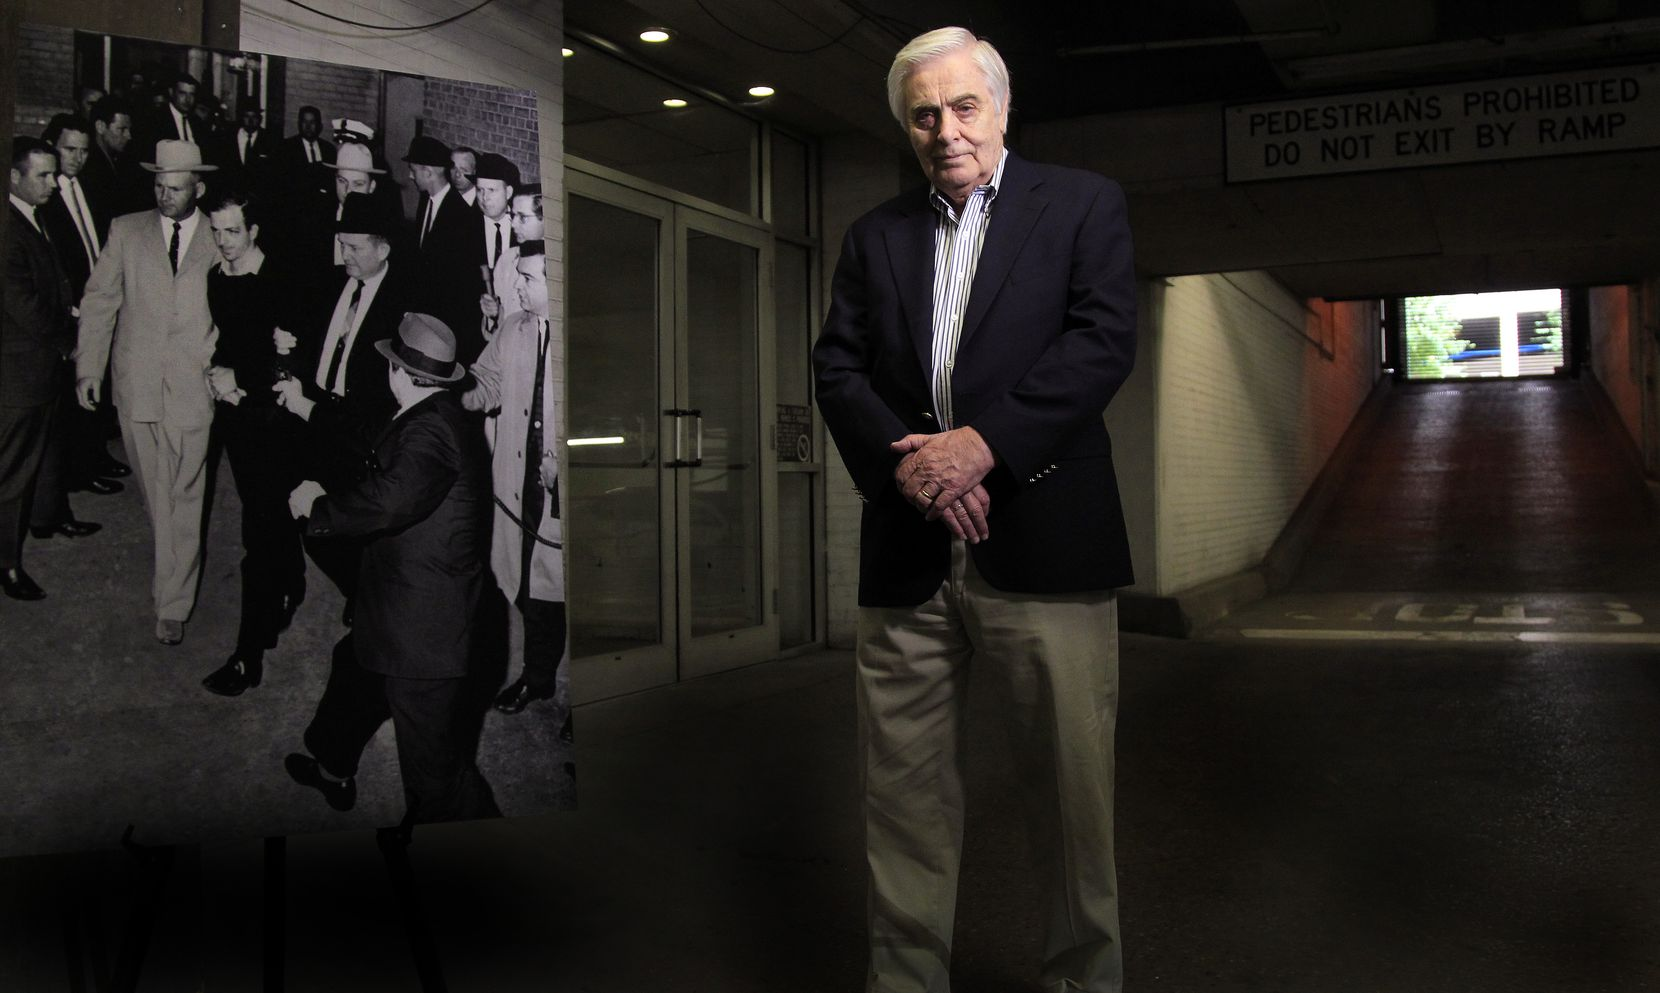 A 2013 photo of Hugh Aynesworth, former Dallas Morning New reporter and author of many books, near a photograph of Jack Ruby shooting and killing Lee Harvey Oswald (taken by Jack Beers of The Dallas Morning News) in the garage of the Dallas Police station. Hugh was about 40 feet away when he witnessed the event on November 24, 1963.